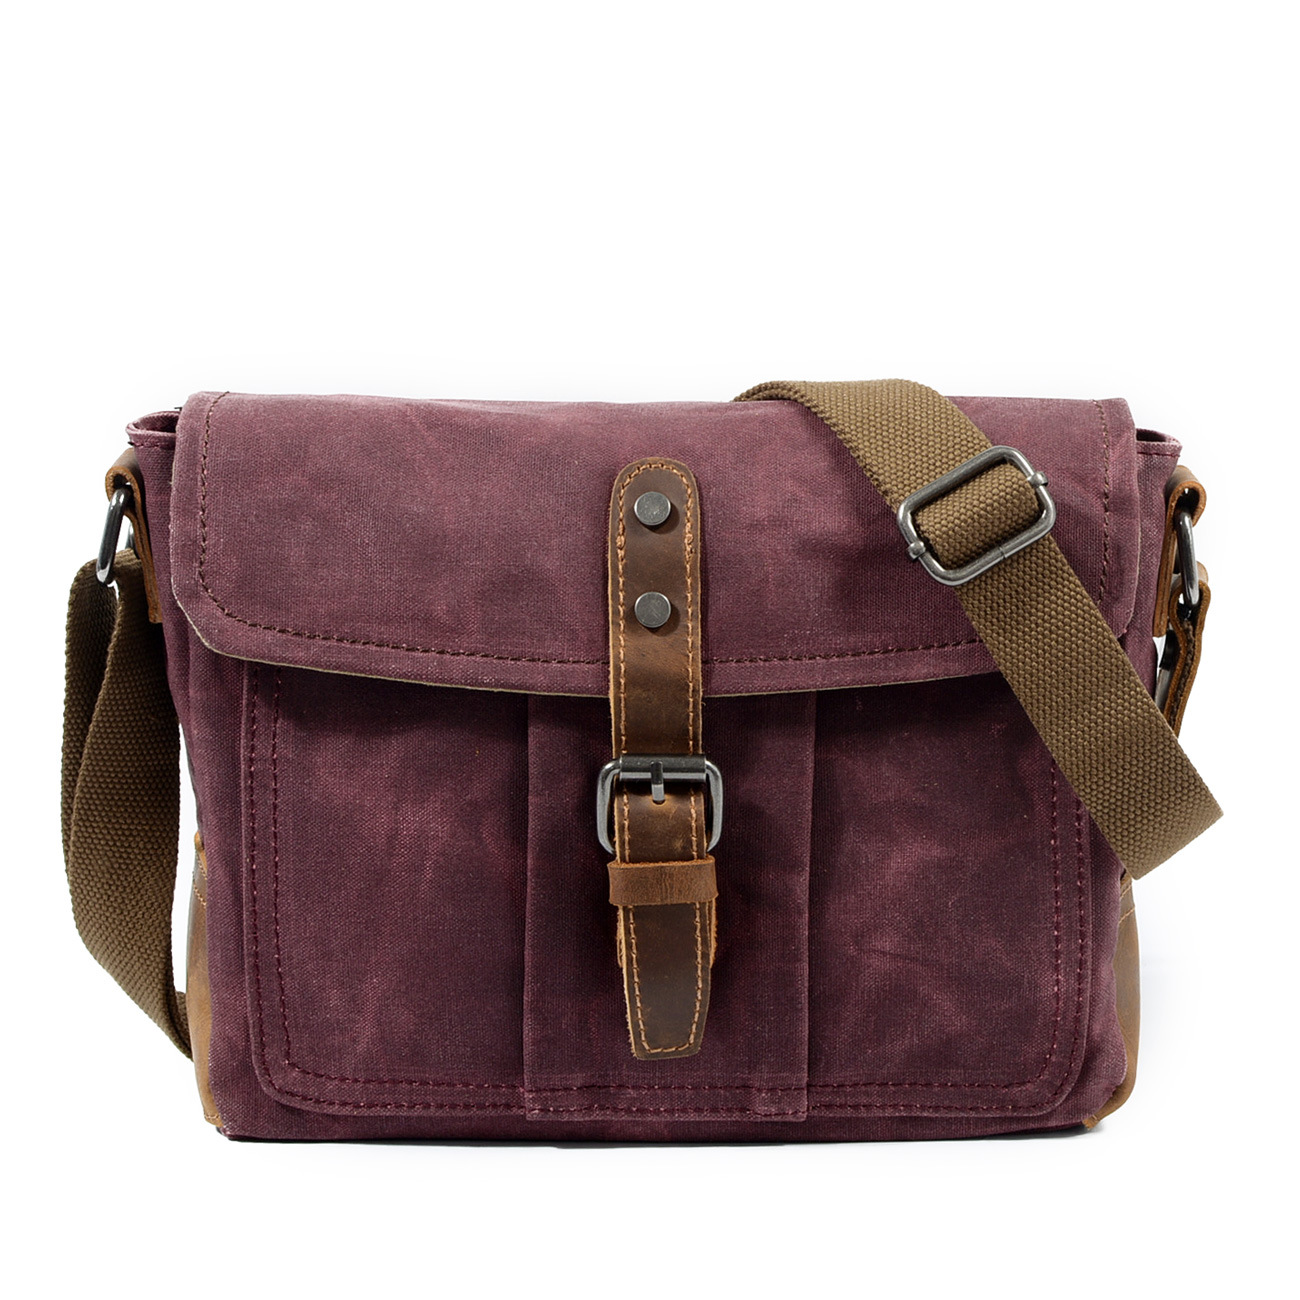 54cc00b47 MCO 2018 Vintage Waxed Canvas Messenger Bag For Men Military Male Travel  Crossbody Bag Waterproof Basic Business Shoulder Bags-in Crossbody Bags  from ...